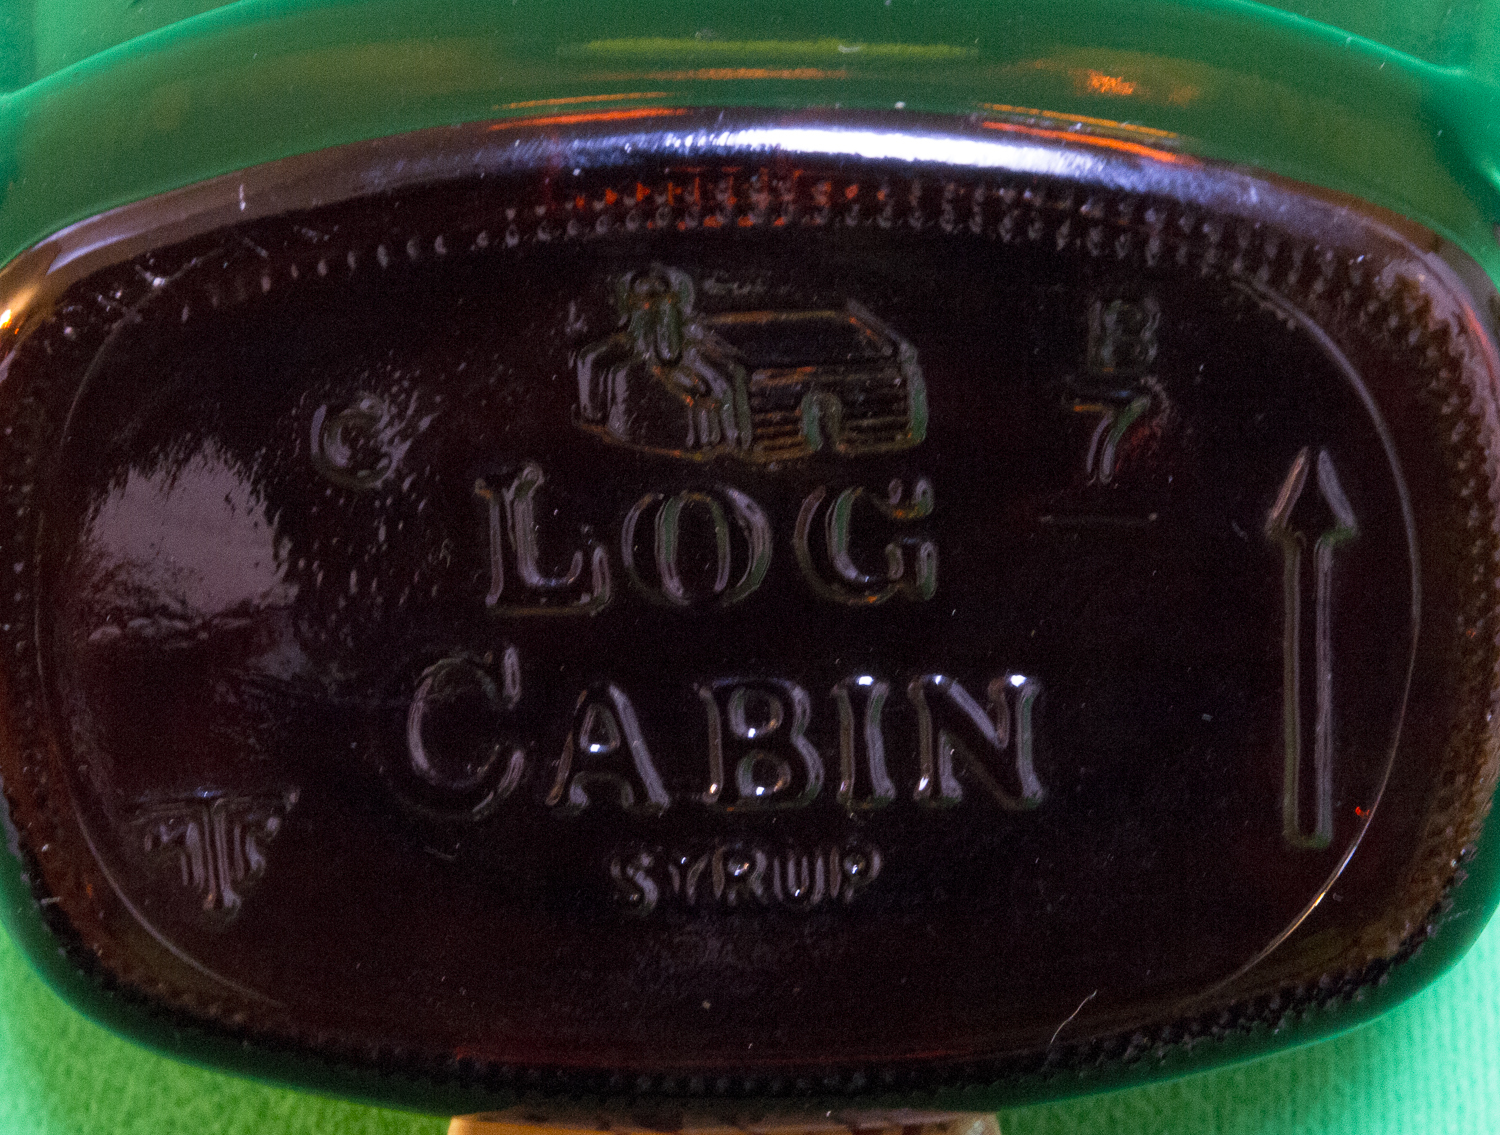 Log cabin syrup bicentennial brown bottle and eagle